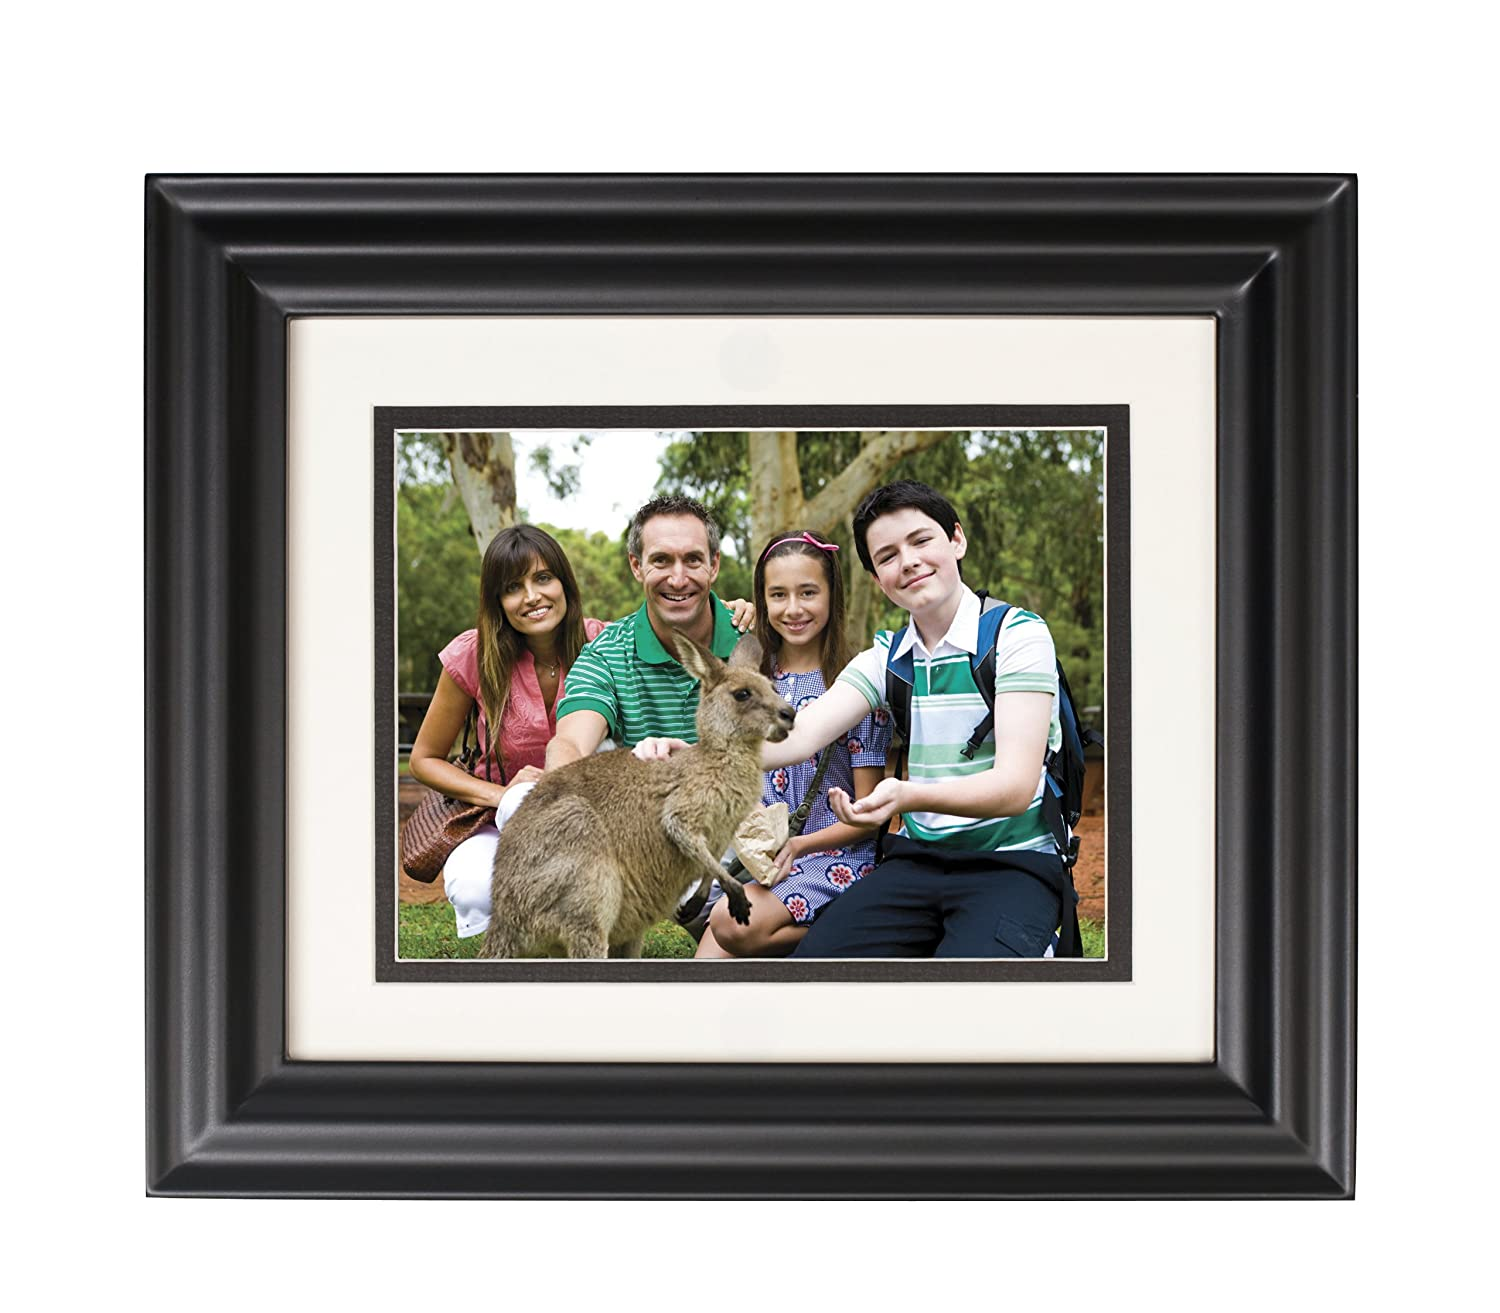 Amazon hp 7 inch digital photo frame black digital picture amazon hp 7 inch digital photo frame black digital picture frames camera photo jeuxipadfo Choice Image